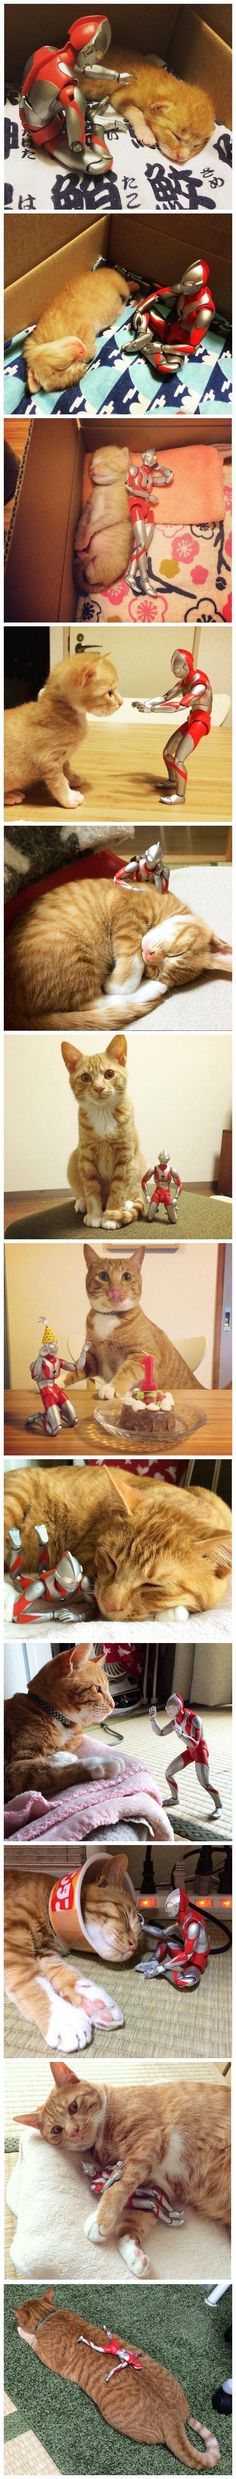 The favorite toy of this cat is with him since he was a baby - Hunde Bilder - Gatos Cute Funny Animals, Funny Cute, Cute Cats, Hilarious, Animal Captions, Animal Memes, Animal Funnies, I Love Cats, Crazy Cats